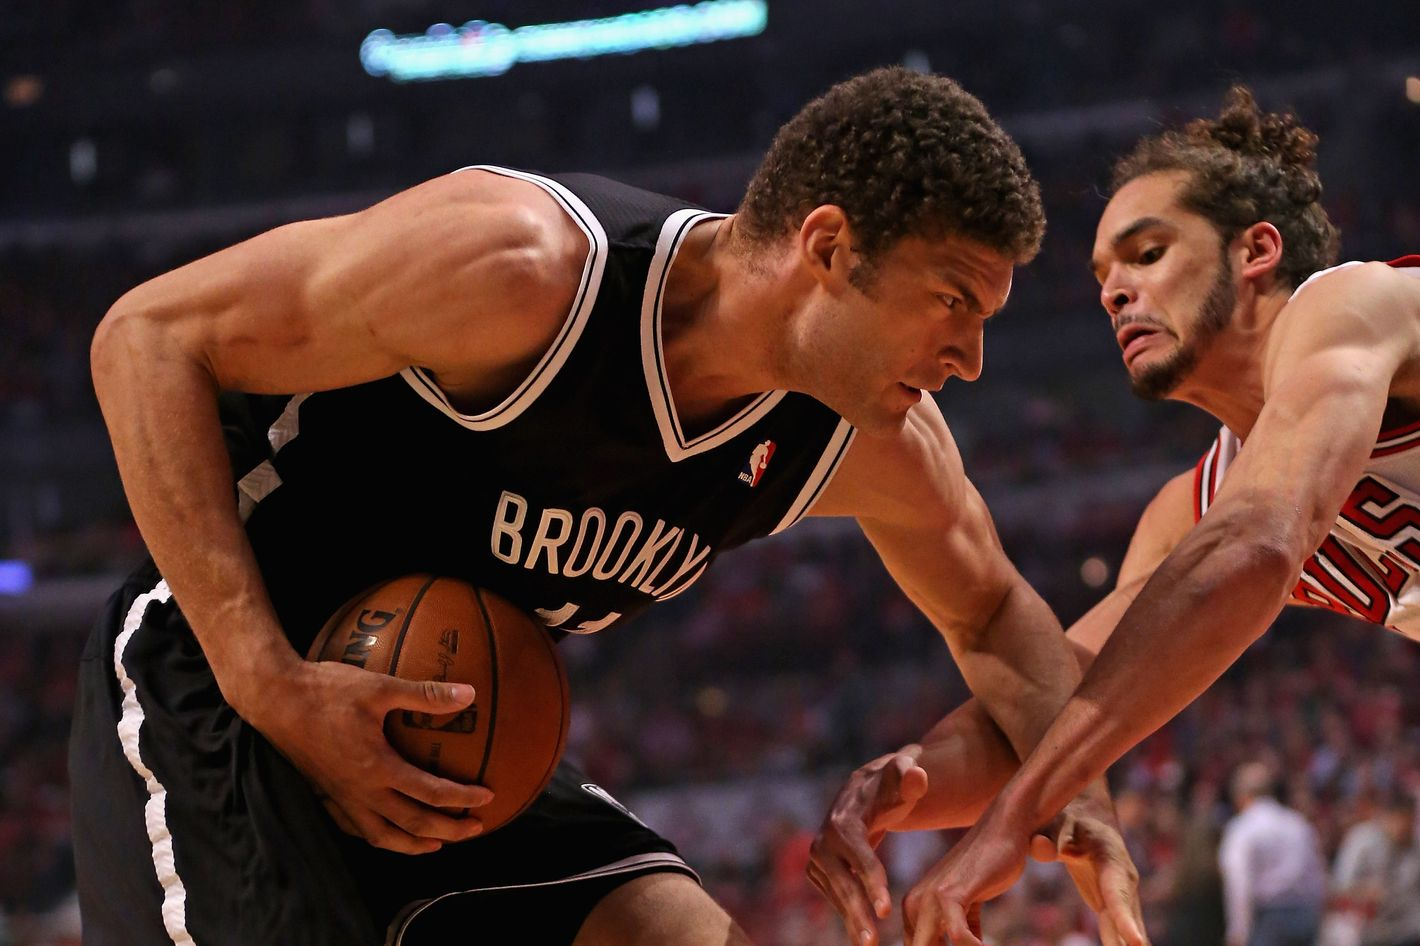 CHICAGO, IL - APRIL 27:  Brook Lopez #11 of the Brooklyn Nets moves against Joakim Noah #13 of the Chicago Bulls in Game Five of the Eastern Conference Quarterfinals in the 2013 NBA Playoffs at the United Center on April 27, 2013 in Chicago, Illinois. NOTE TO USER: User expressly acknowledges and agrees that, by downloading and/or using this photograph, User is consenting to the terms and conditions of the Getty Images License Agreement.  (Photo by Jonathan Daniel/Getty Images) *** Local Caption *** Brook Lopez; Joakim Noah